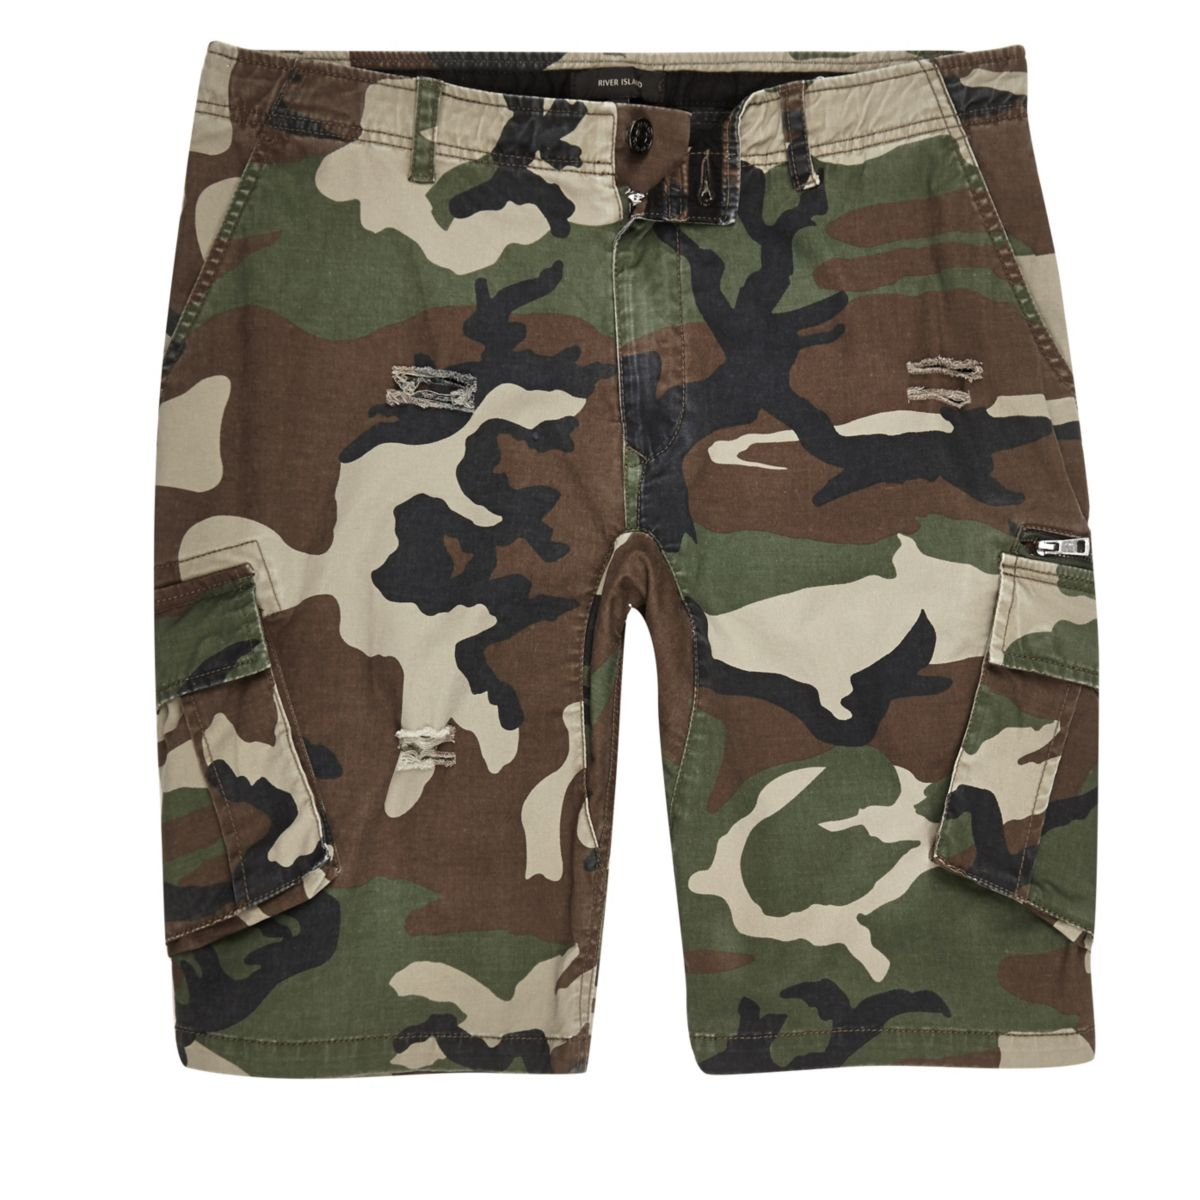 Free shipping Slim Fit Camouflage Print Patch Decorated Jeans ACU CAMOUFLAGE under $ in Jeans online store. Best Cropped Jeans Online and Loose Fitting Shorts Online for .